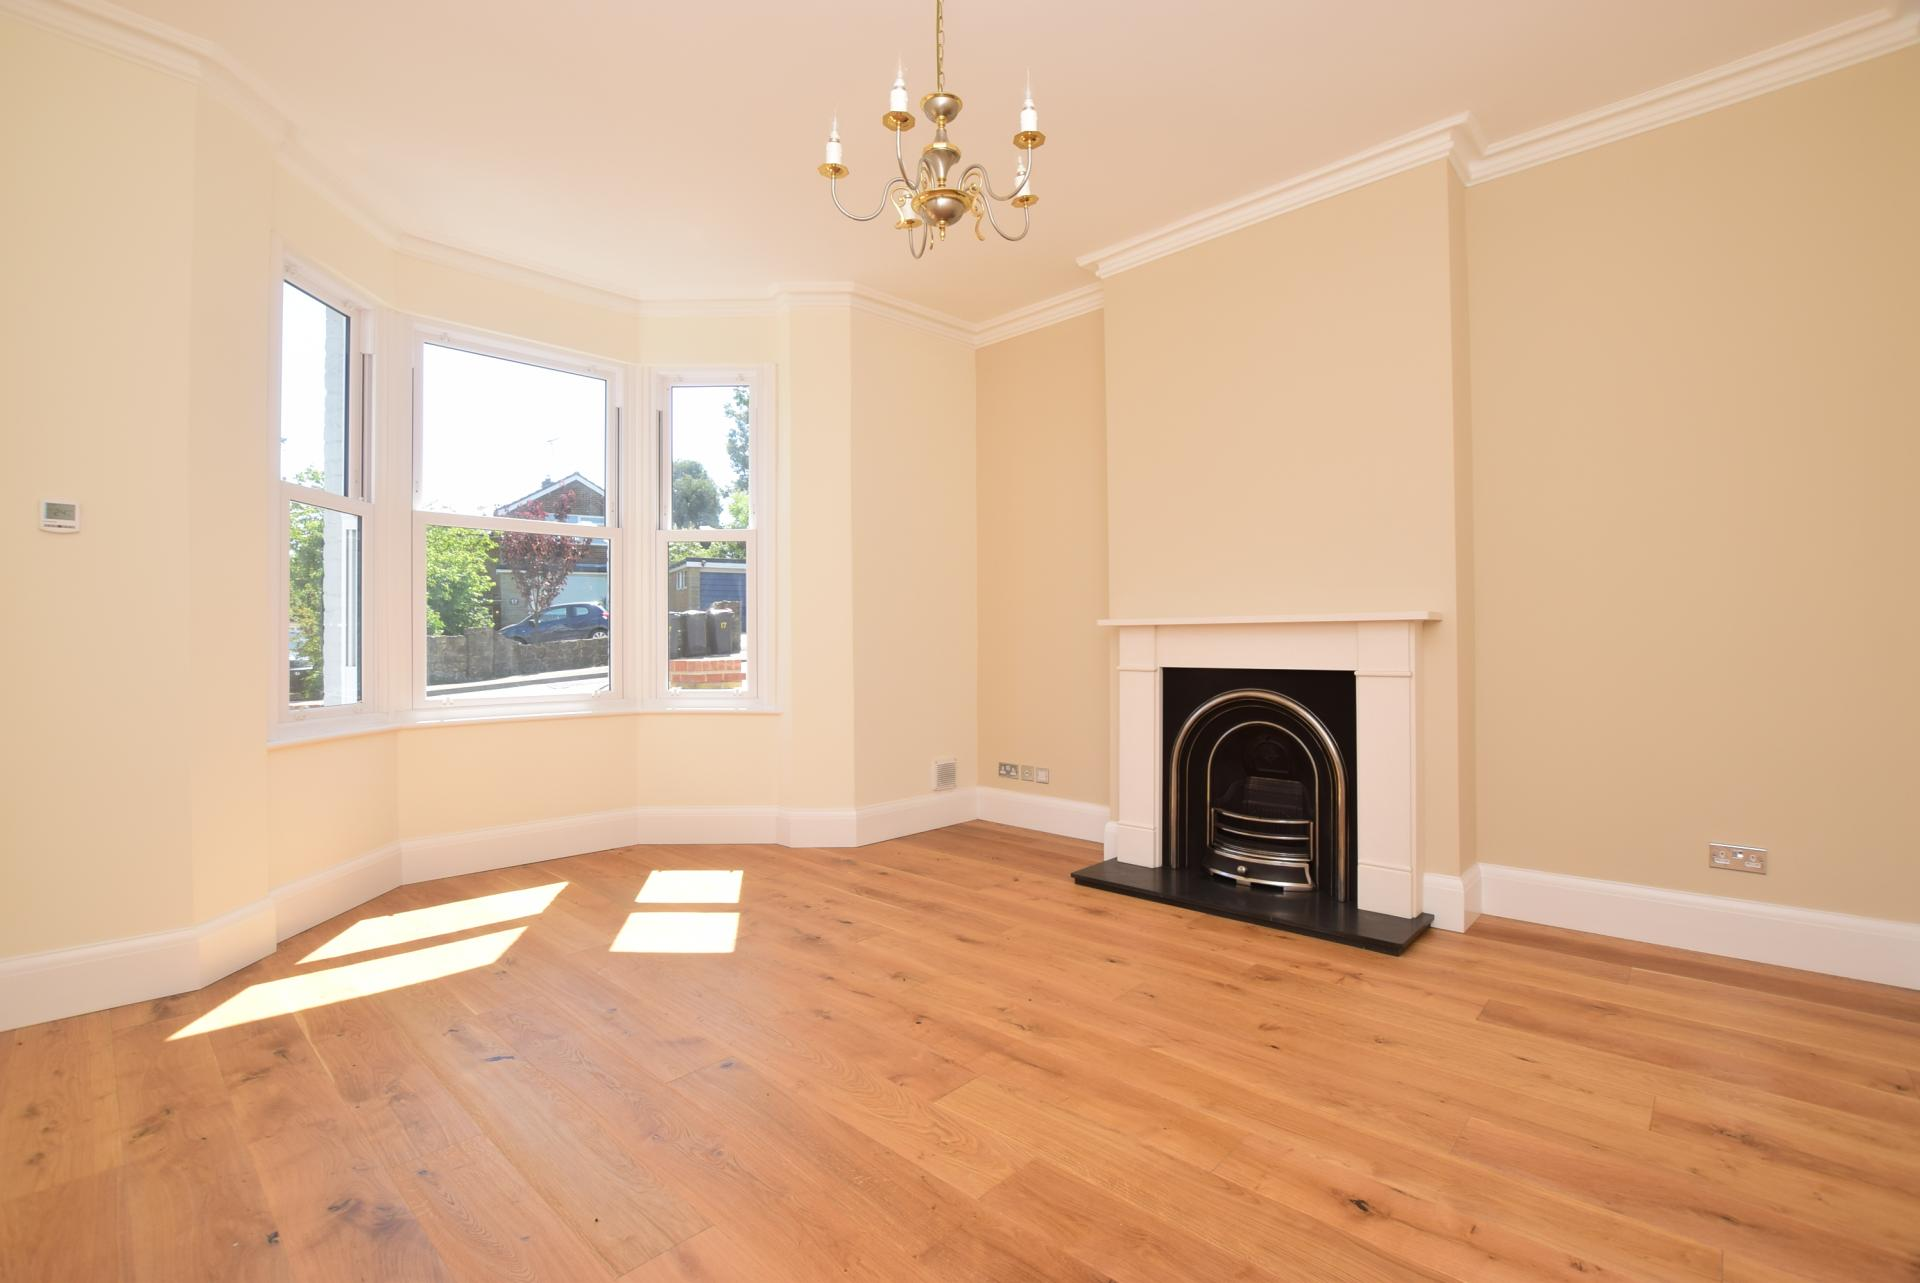 4 Bedroom Detached House For Sale In Whitstable